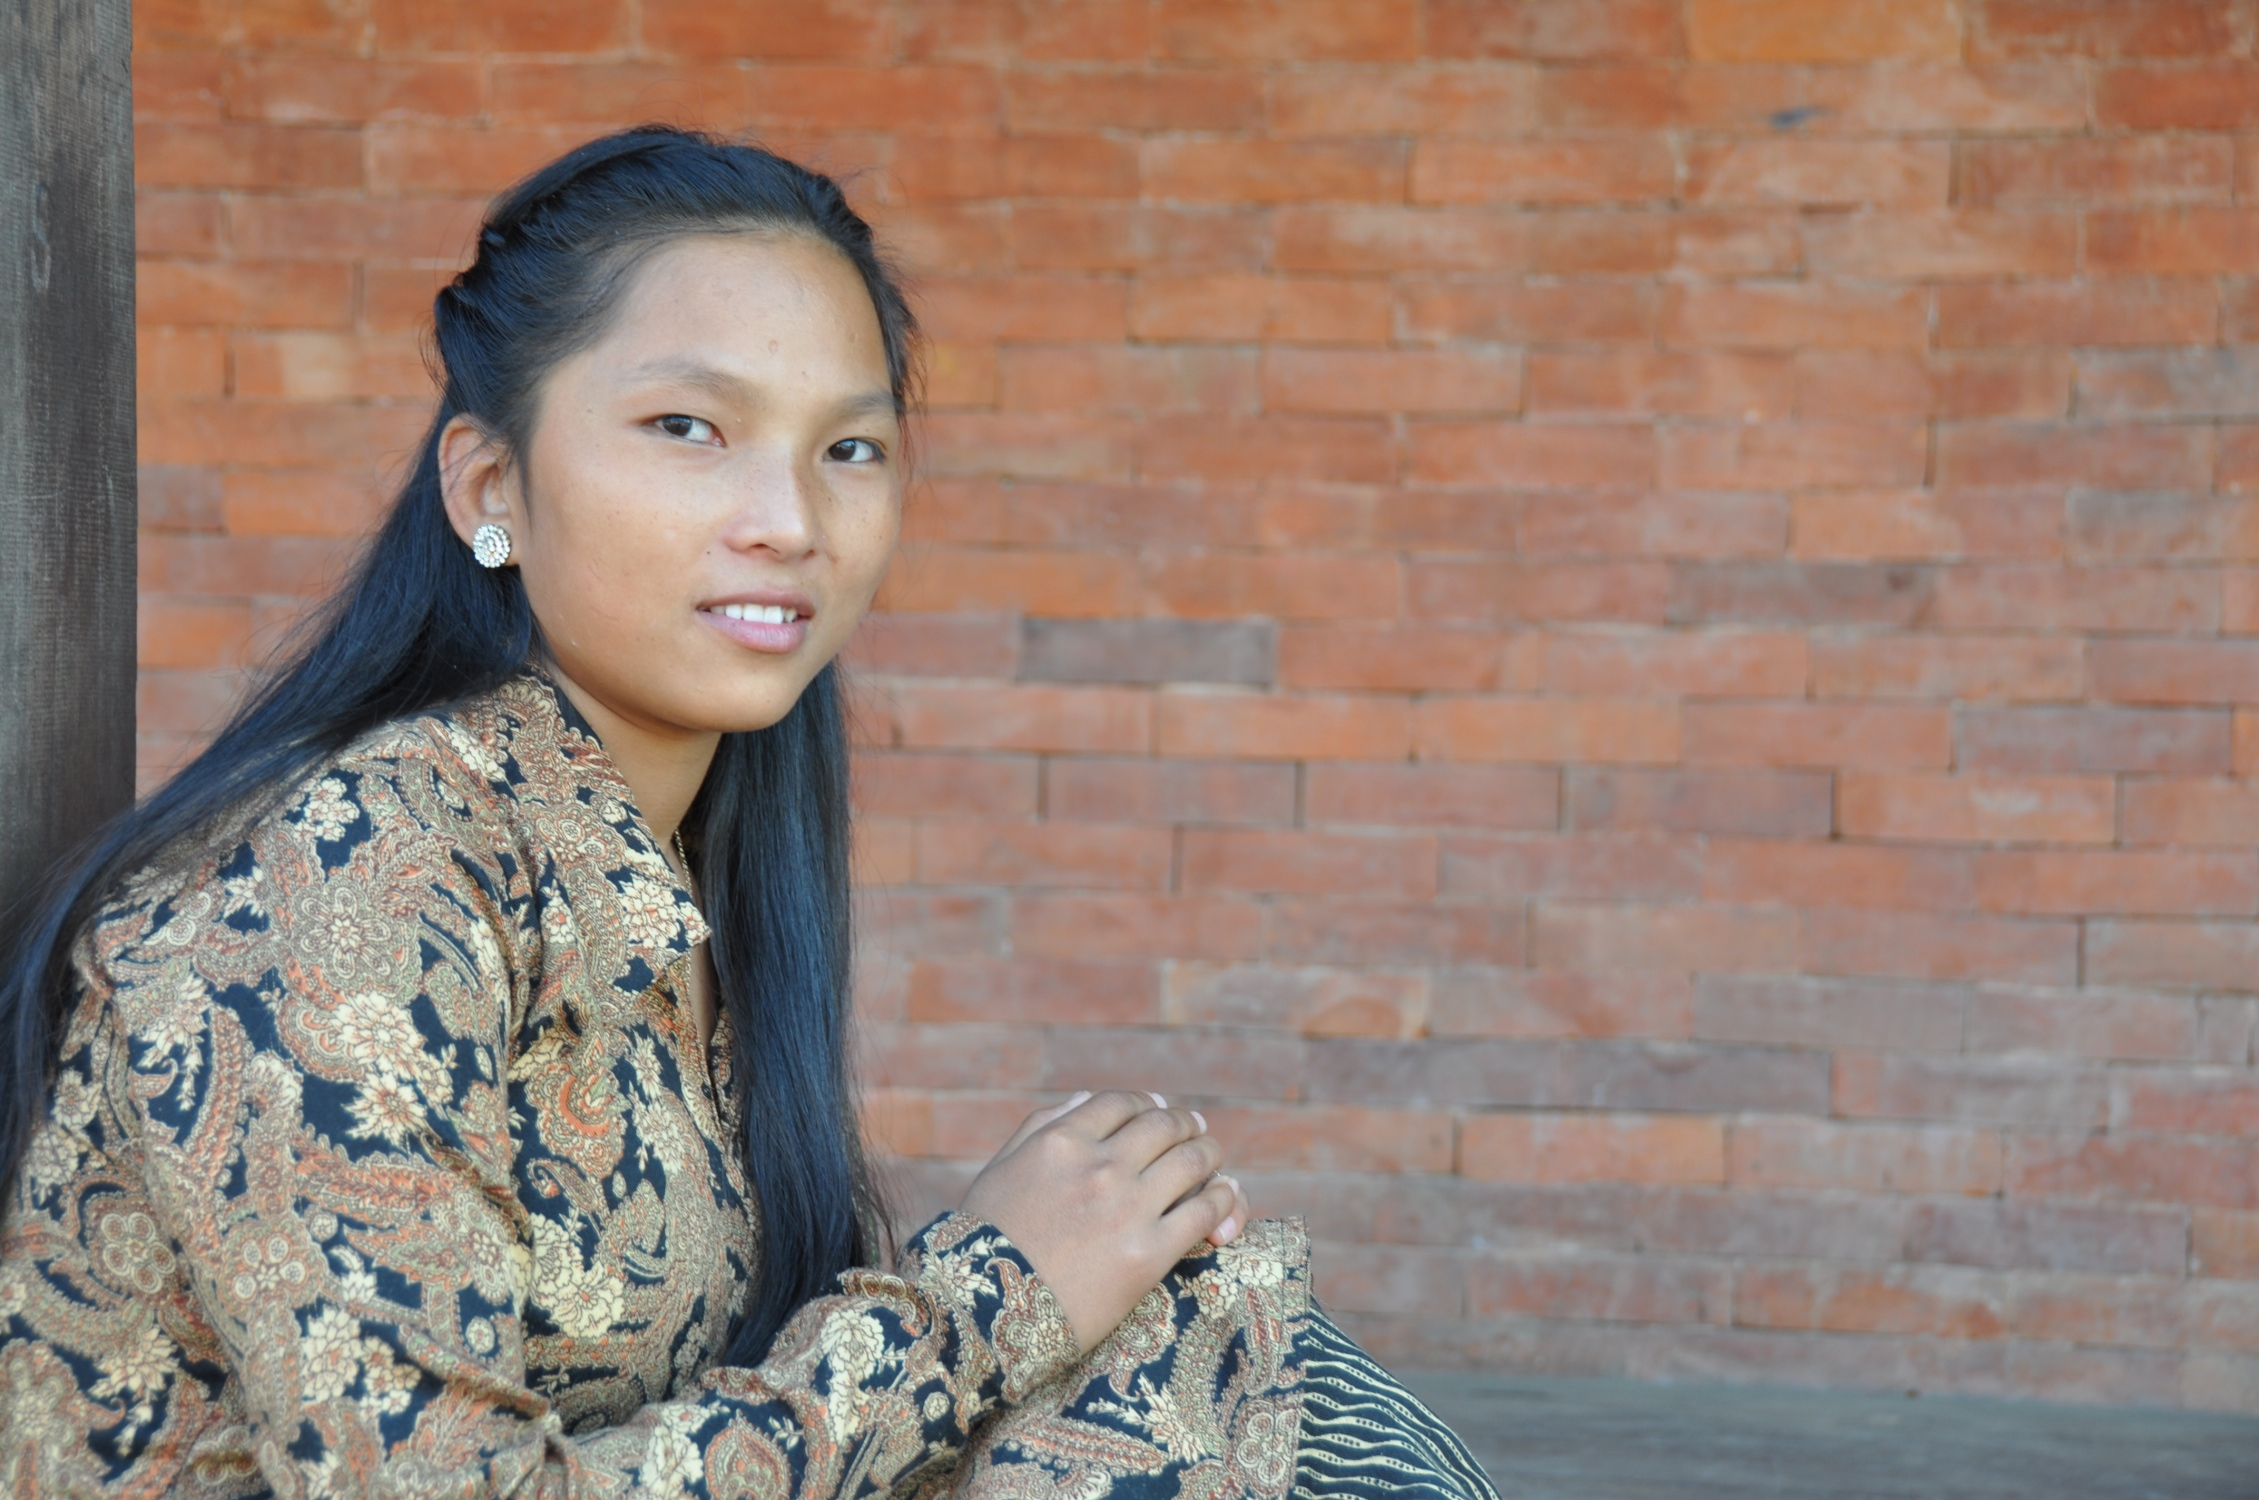 Tabitha    Tabitha's mother died when she was 18 months old.  Her father eventually remarried, but her stepmother mistreated her.  Her father wanted to send Tabitha to live in a monastery where she would become a Buddhist nun.  Her aunt attends David's church and asked him if Tabitha could live at the children's home.  She was thirteen when she came to the children's home and was behind her age group in school.  She has been working hard to get caught up.